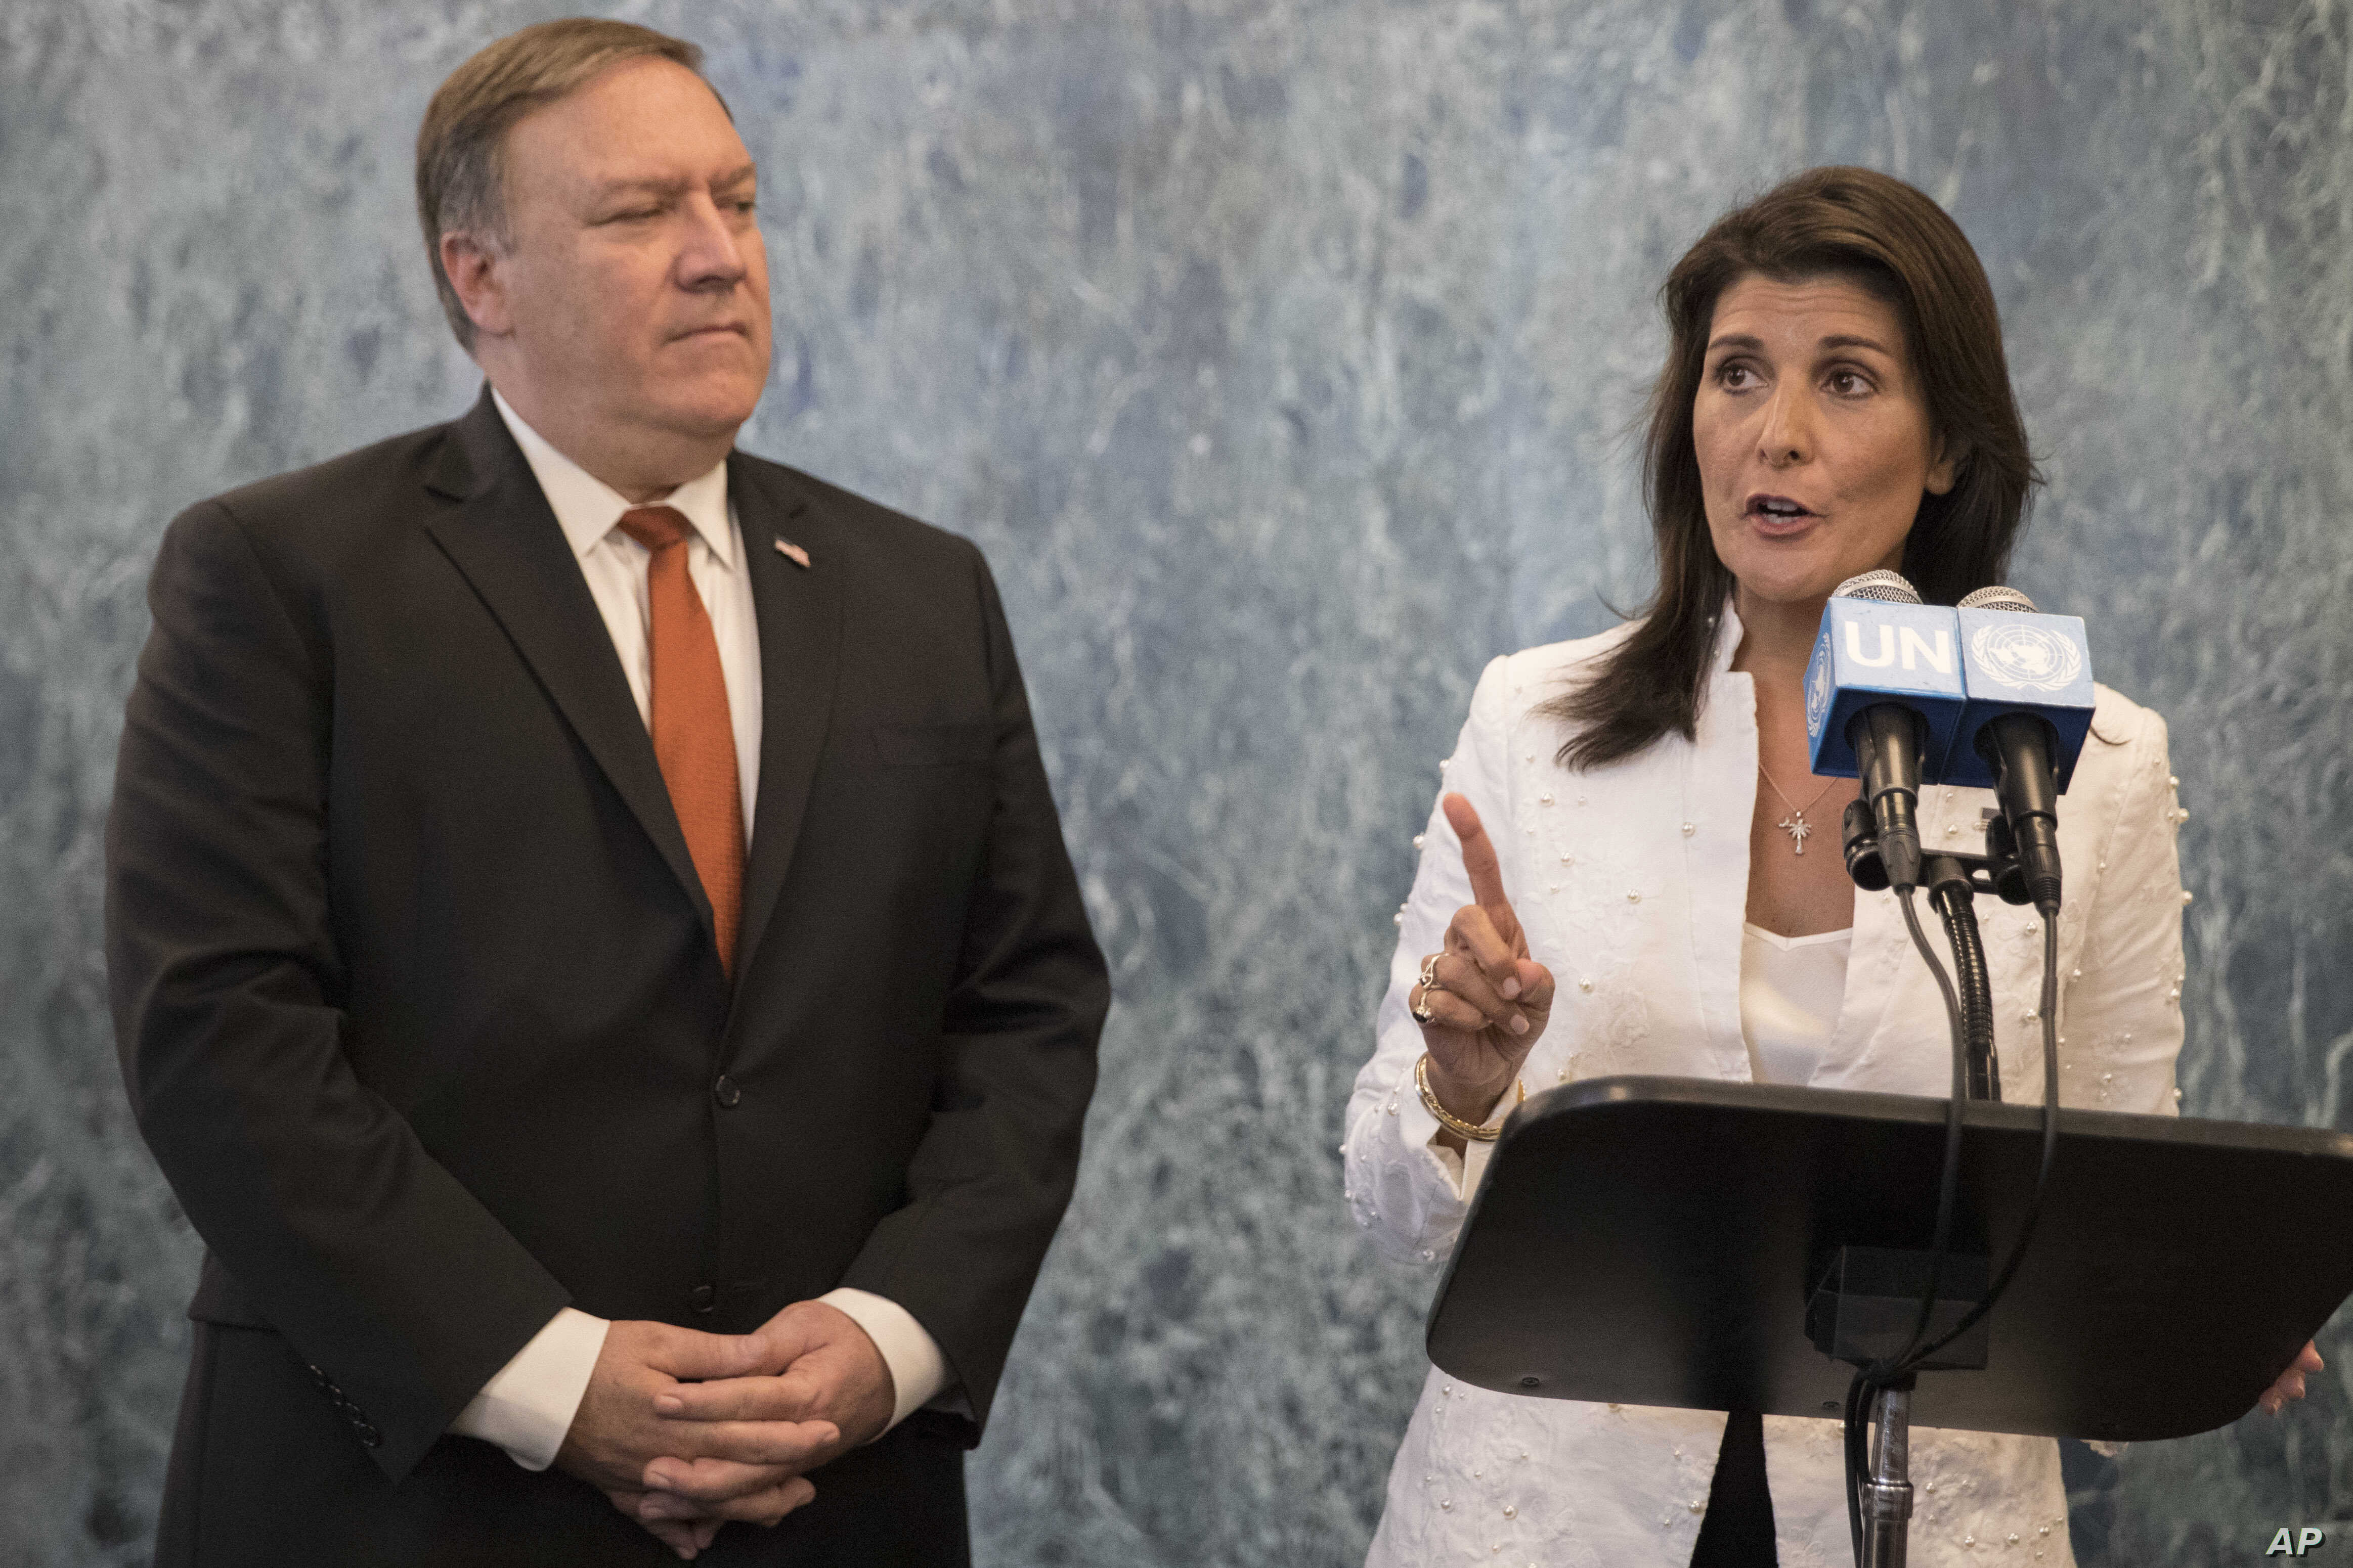 """FILE - In this Friday, July 20, 2018 file photo, U. S. Secretary of State Mike Pompeo, left, and American Ambassador to the United Nations Nikki Haley speak to reporters at United Nations headquarters. The United States has called an urgent meeting of the U.N. Security Council for Monday, Sept. 17, 2018 in response to what it says are efforts by some countries """"to undermine and obstruct"""" sanctions against North Korea. (AP Photo/Mary Altaffer, File)"""